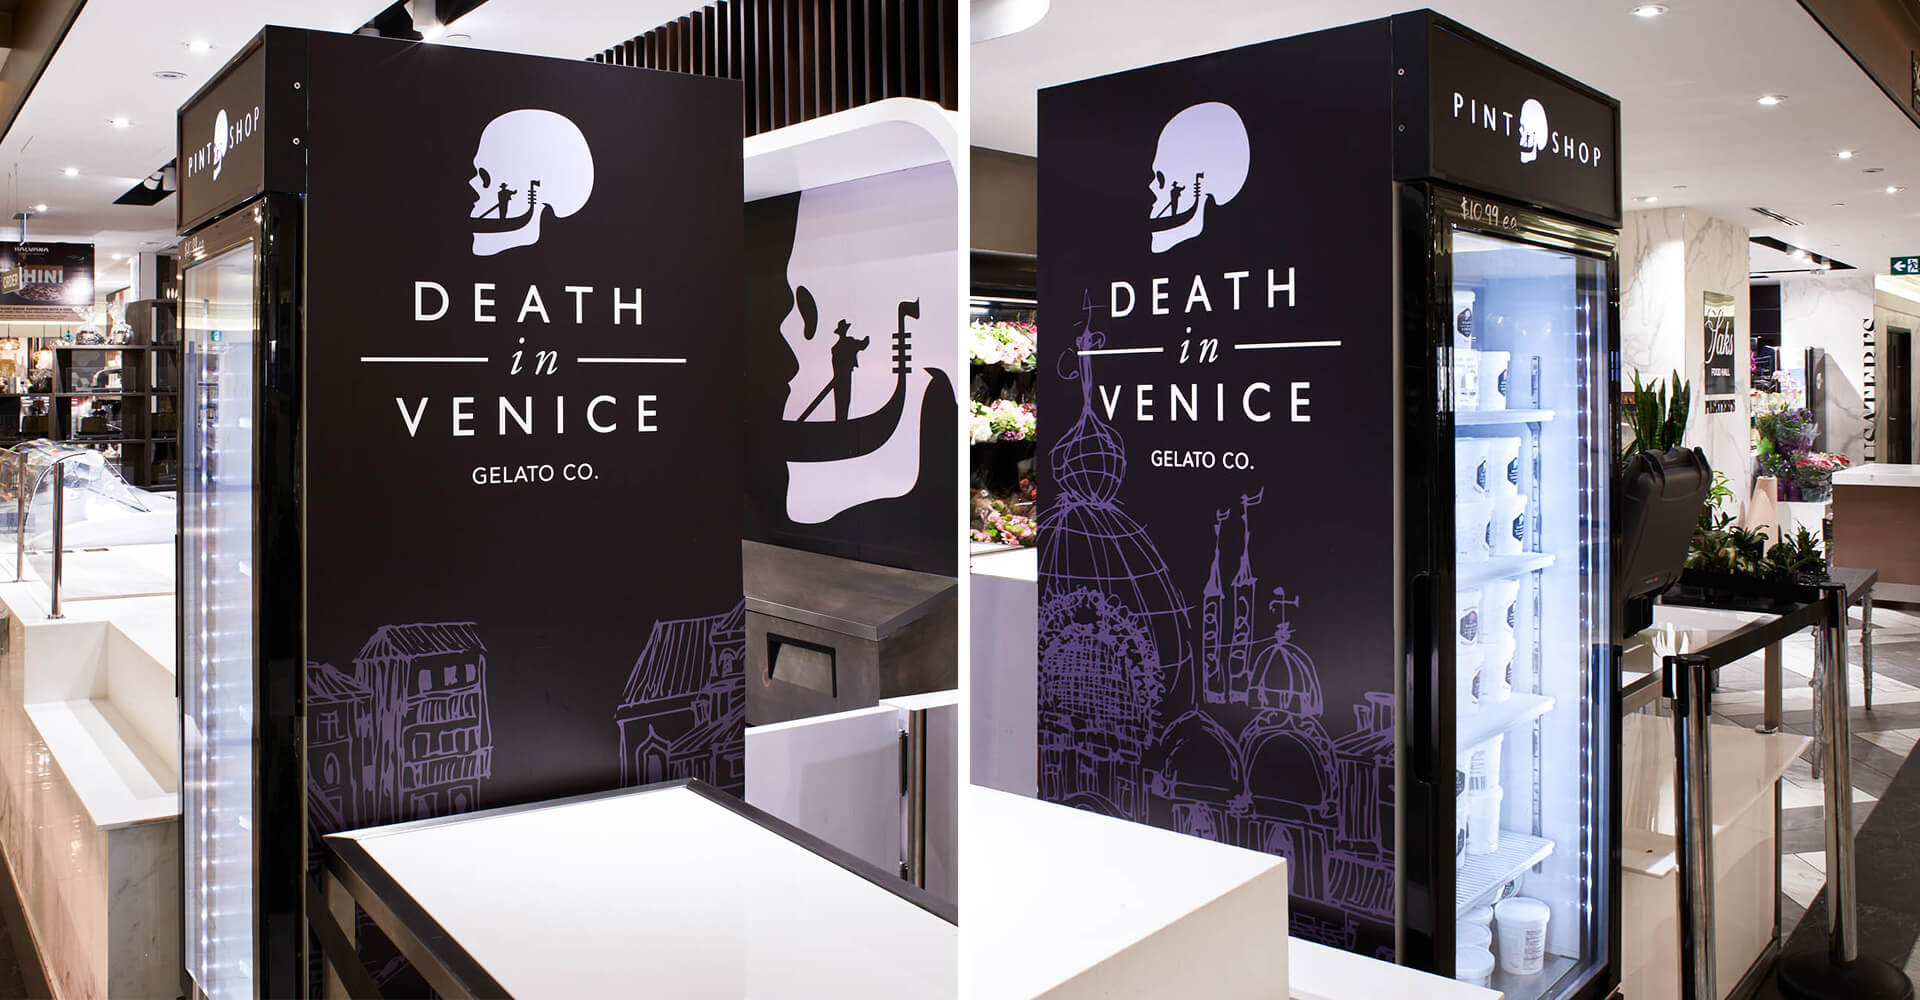 Death in Venice Gelato Co.